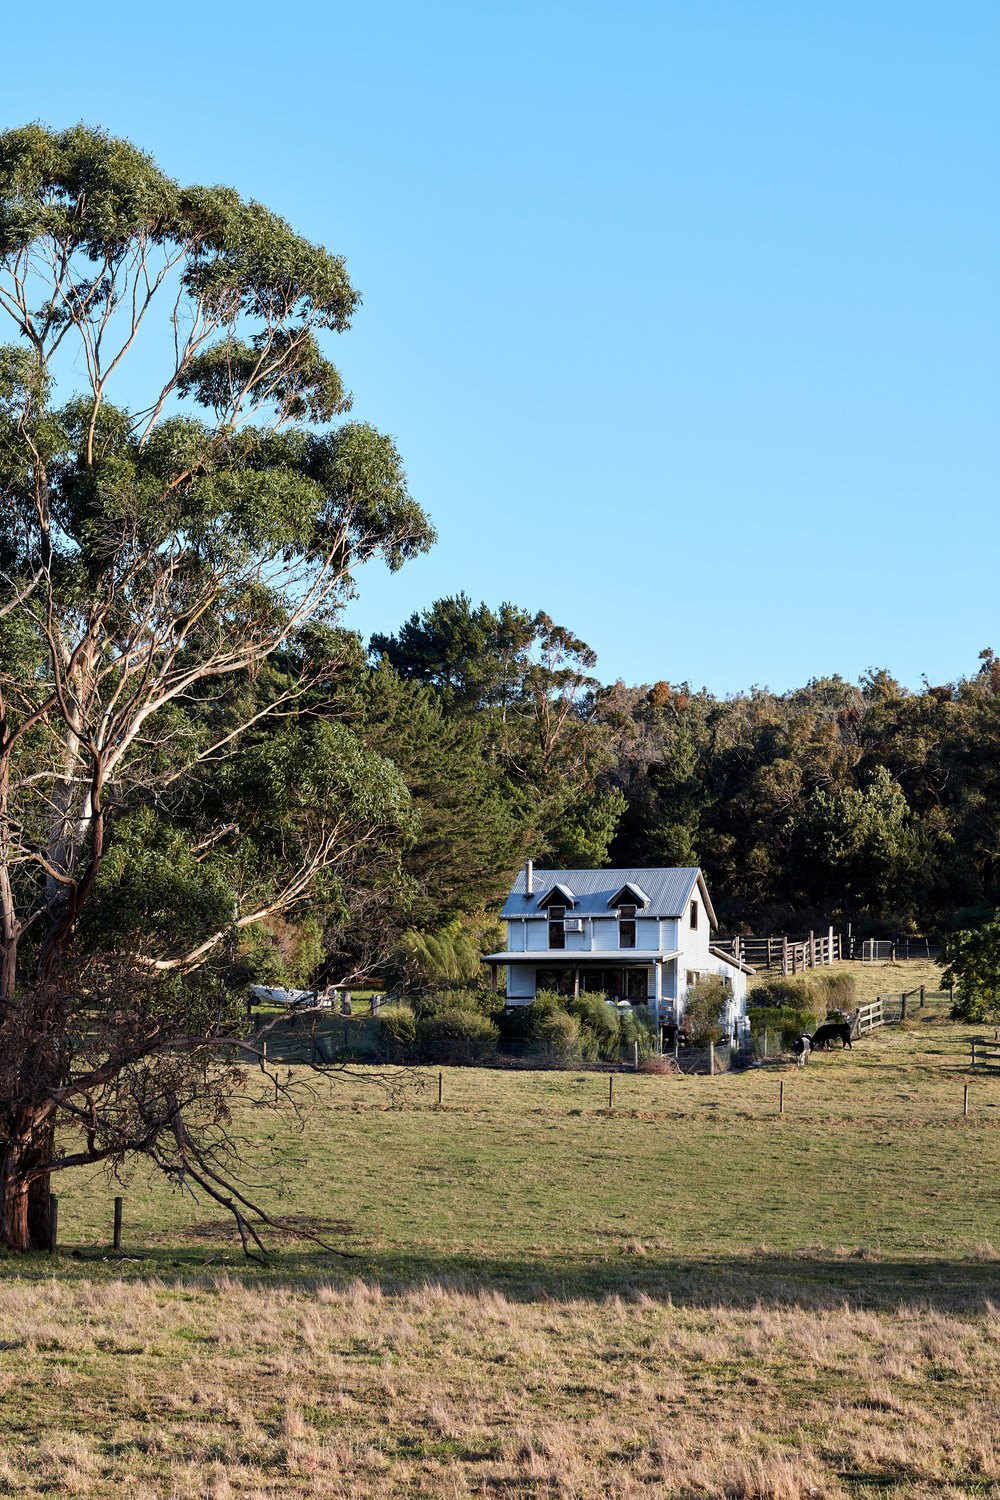 nathan-k-davis-architecture-architectural-photography-interior-exterior-residential-macks-creek-air-bnb-cottage-country-gippsland-9